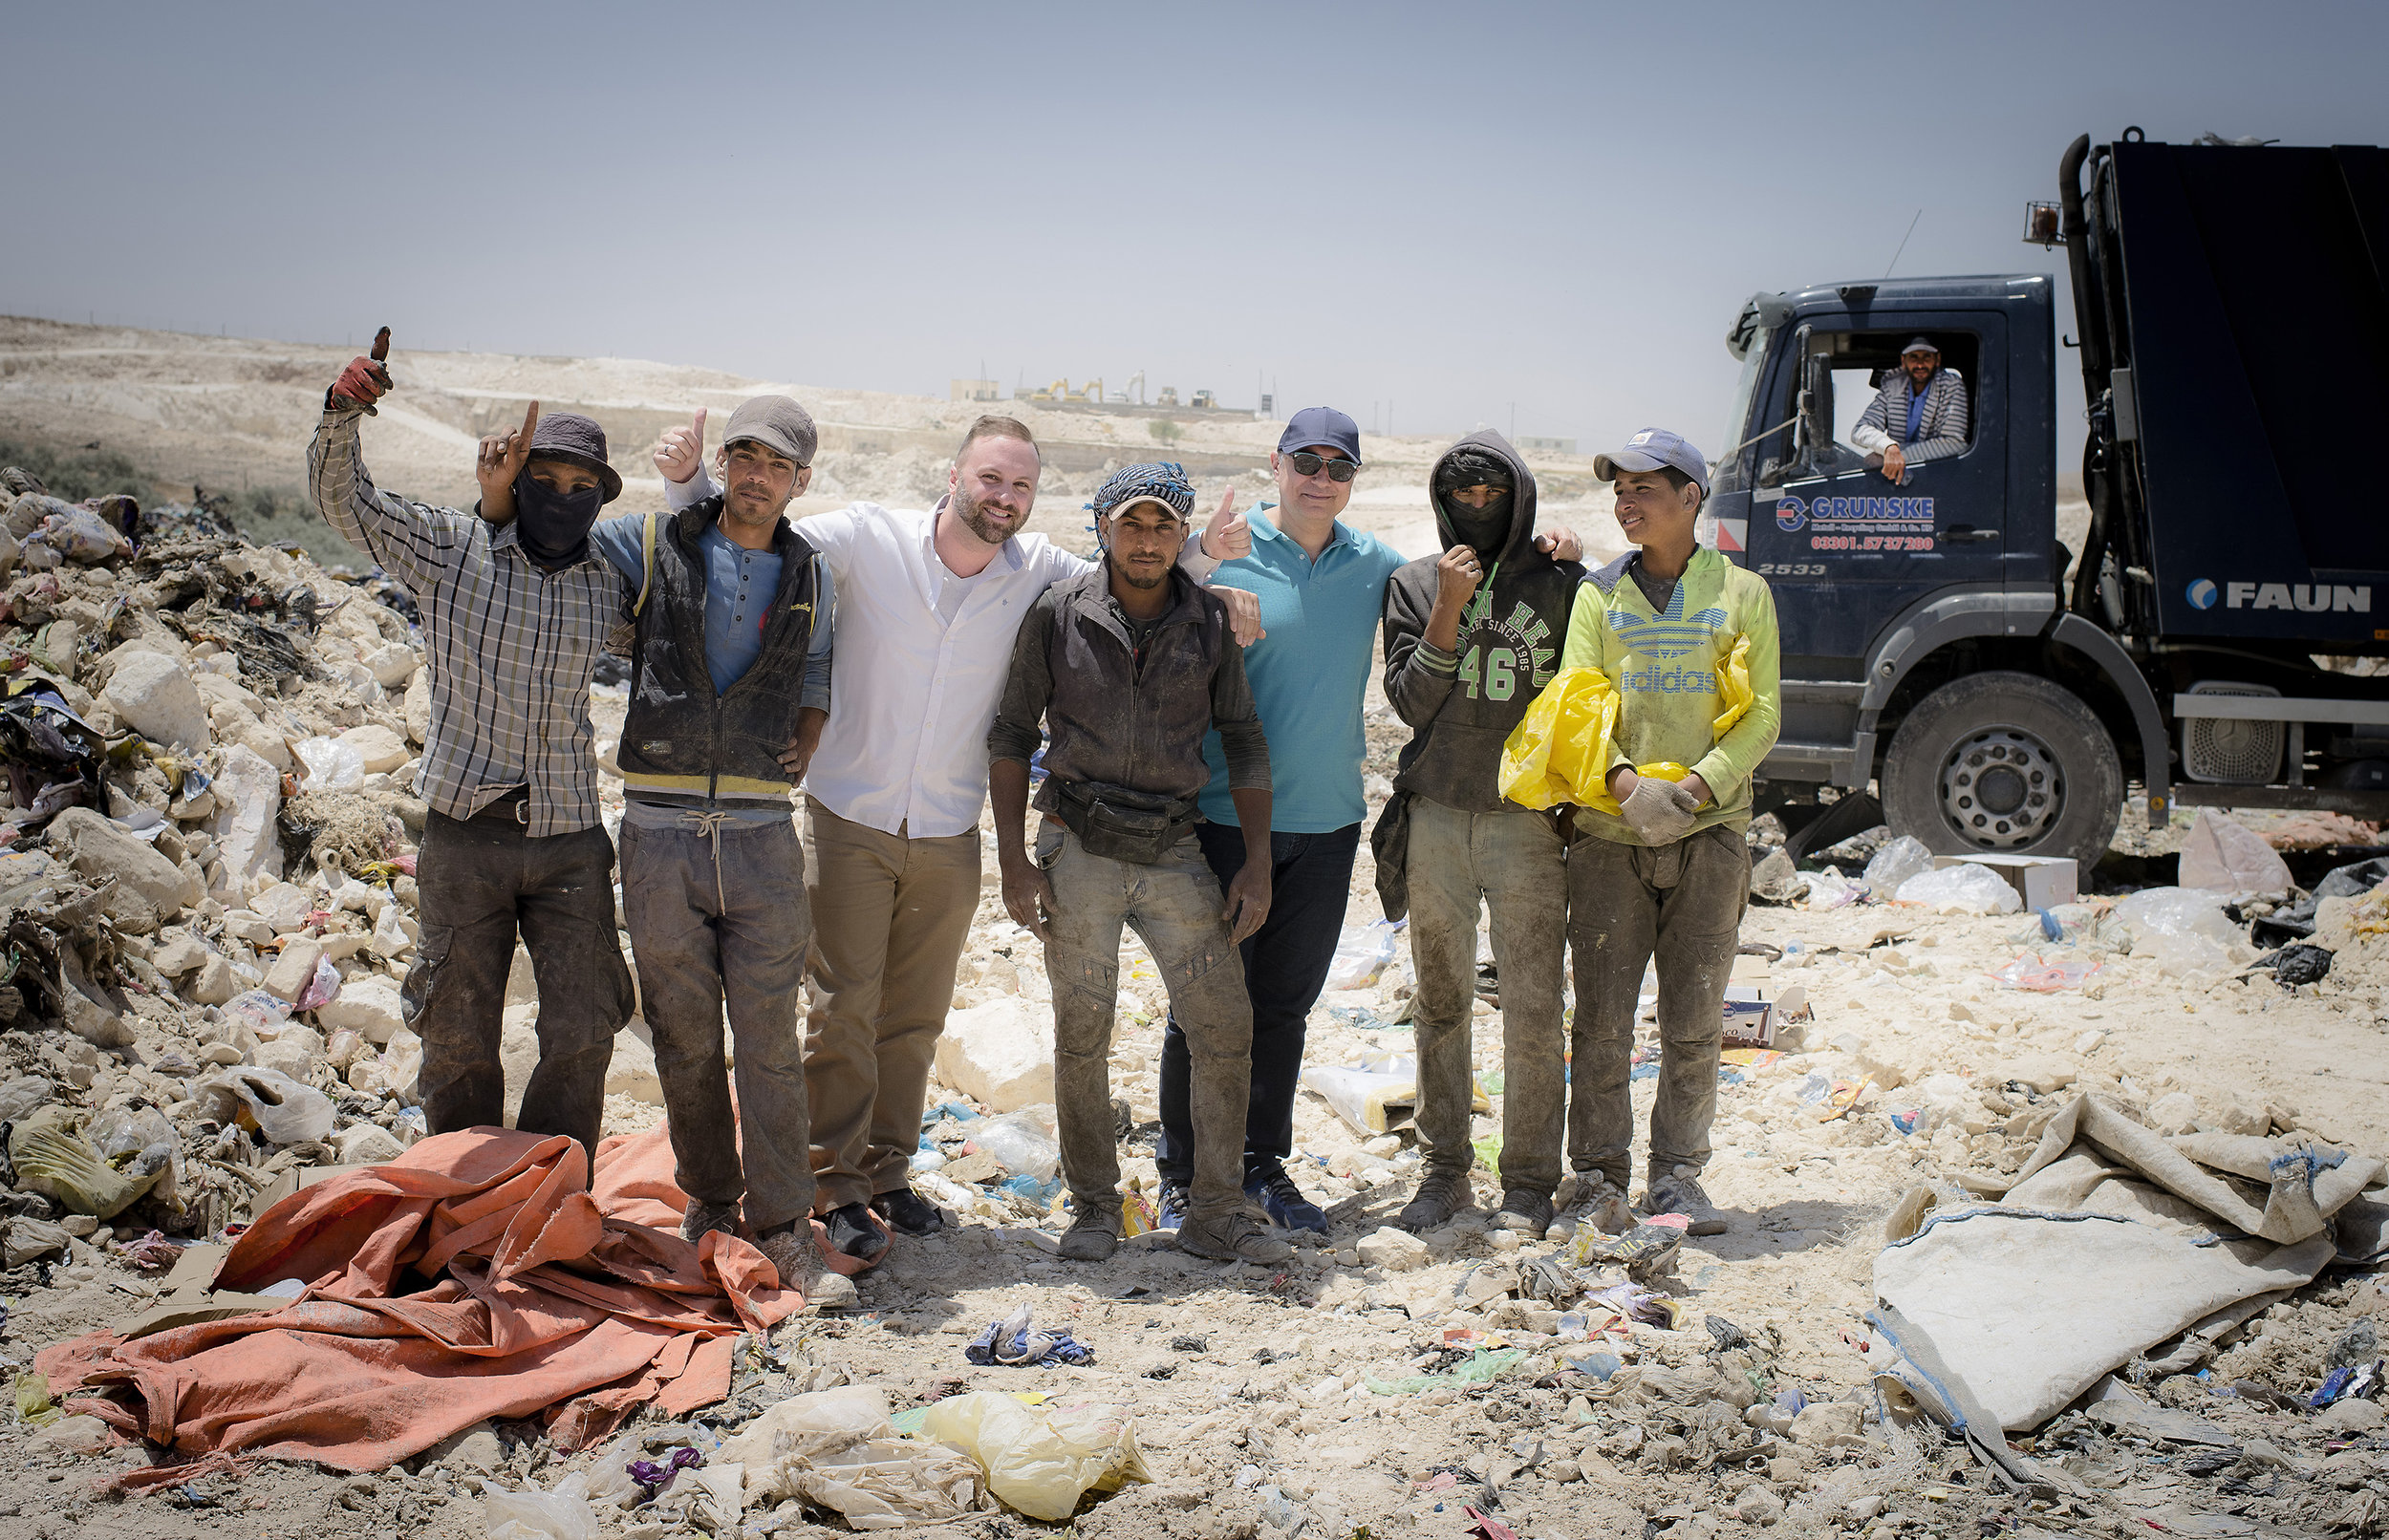 Timothy Bouldry and Antonis Mavropoulos pose with Syrians at the Al Ekaider dumpsite in Irbid, Jordan.